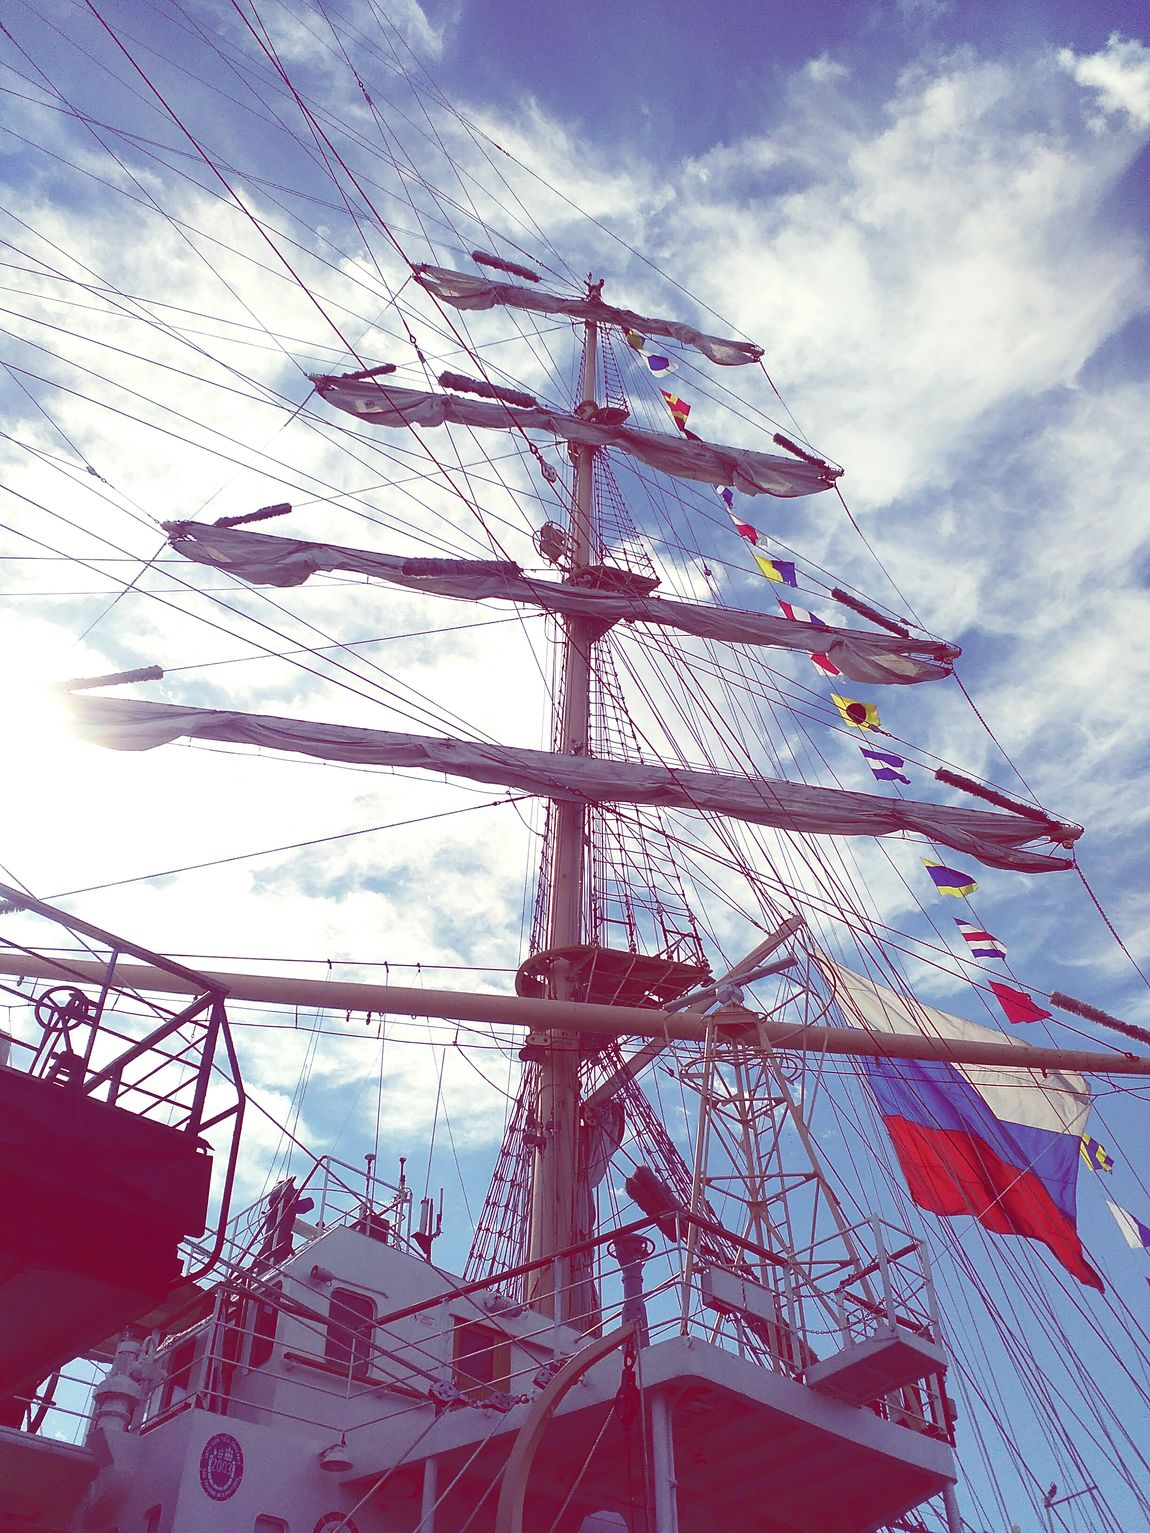 People And Places Tallship Tallships Tallshipsrace2016 TallShipsRegatta TallShips2016 Ship Ships Varna Varna,Bulgaria VarnaBulgaria Varna2017 First Eyeem Photo 2016 Low Angle View Sky Cloud - Sky Cloudy Day View Russia Russianship Russian Blue Russian Flag